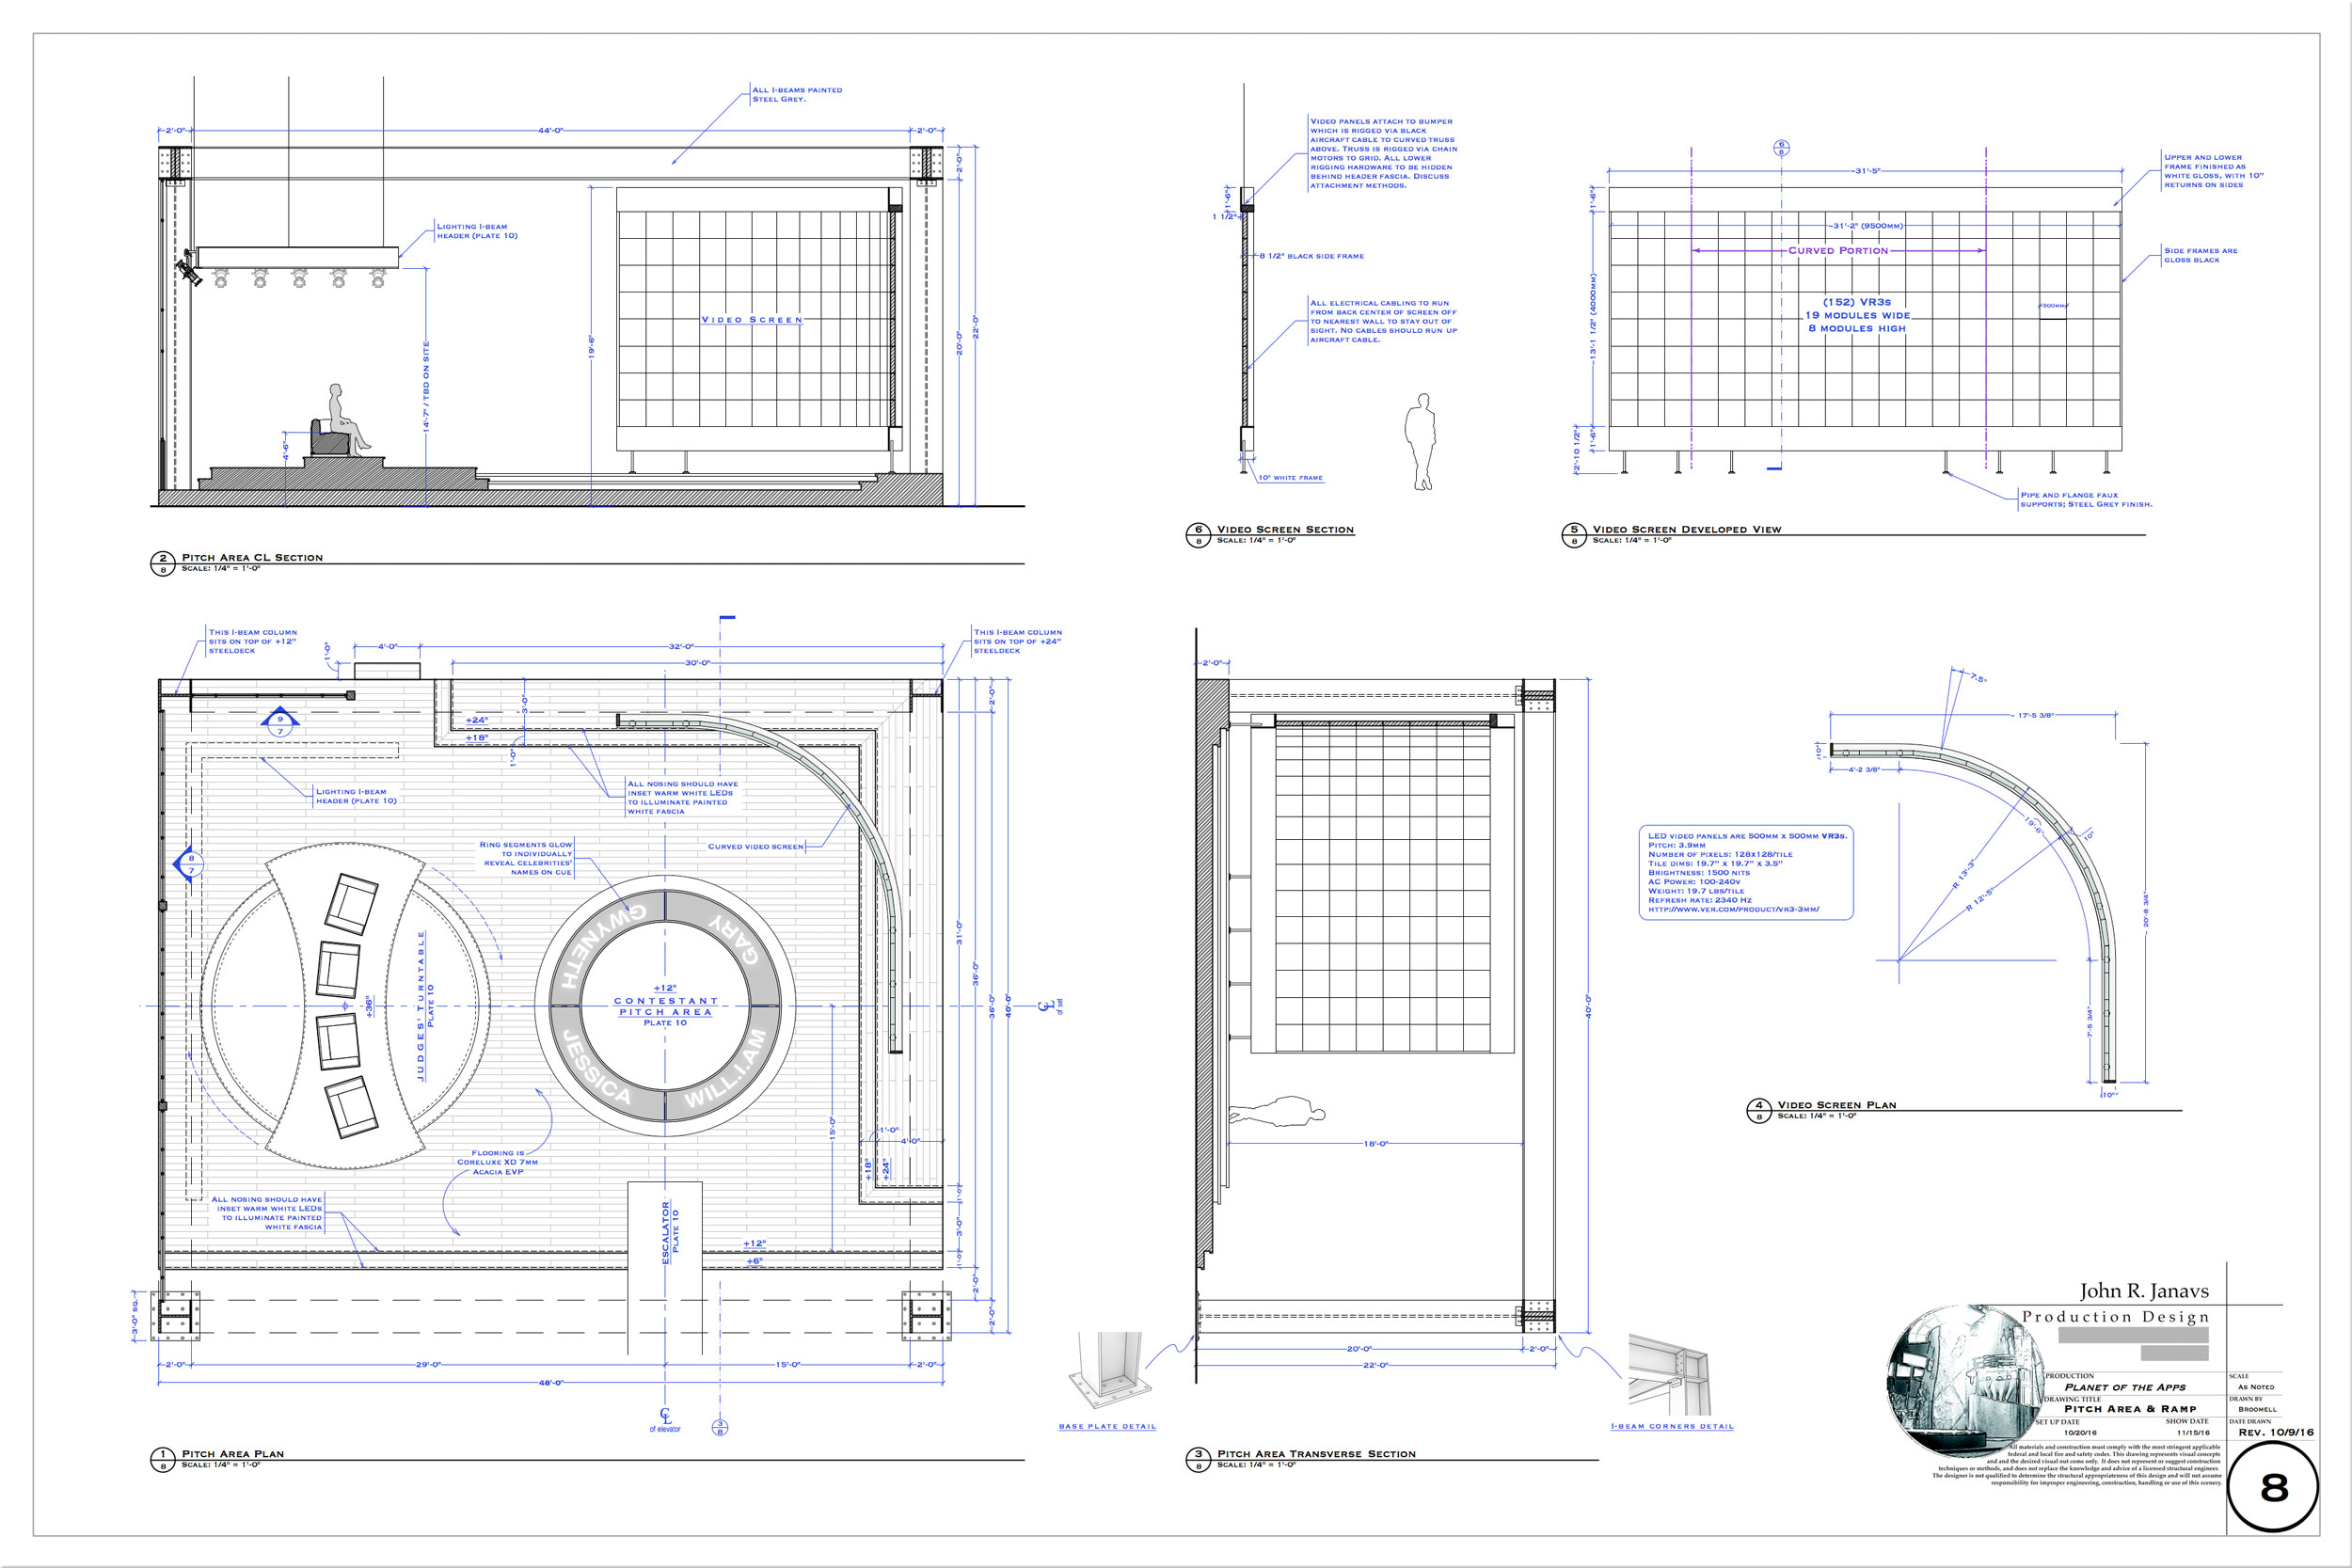 andy-broomell-set-design-drafting-pota3.jpg